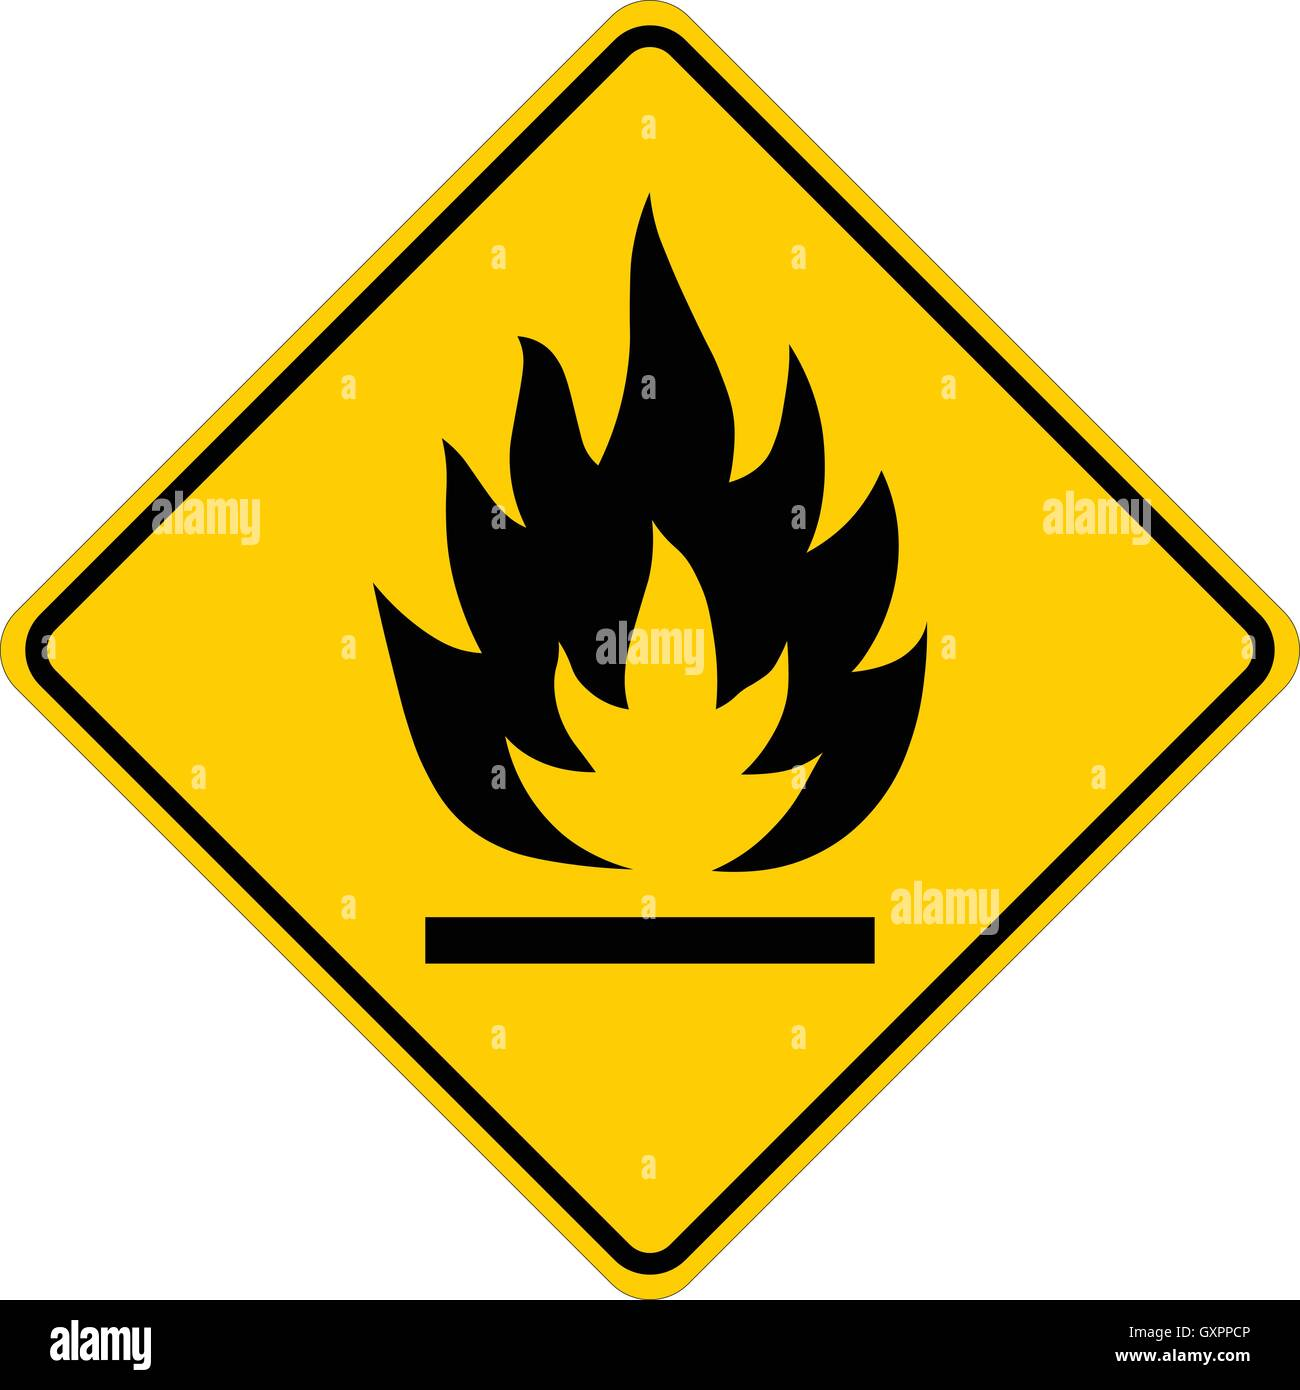 Flammable yellow square warning sign isolated vector illustration flammable yellow square warning sign isolated vector illustration buycottarizona